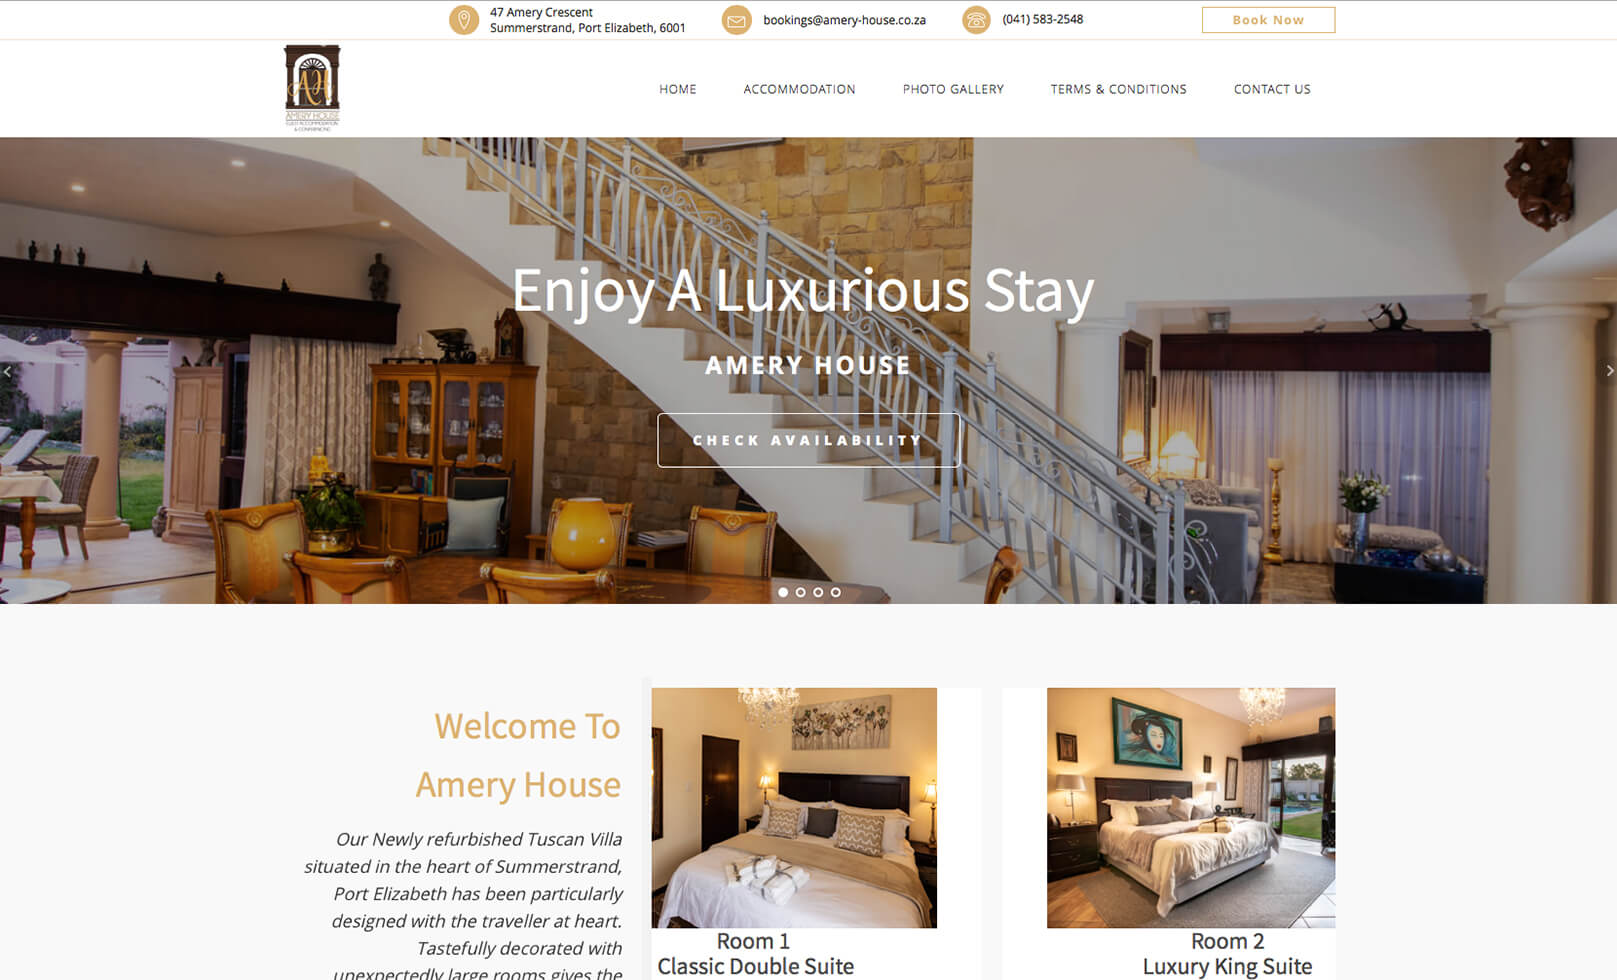 Web Design, Interior, Exterior and Food Photography for a Port Elizabeth based guest house.